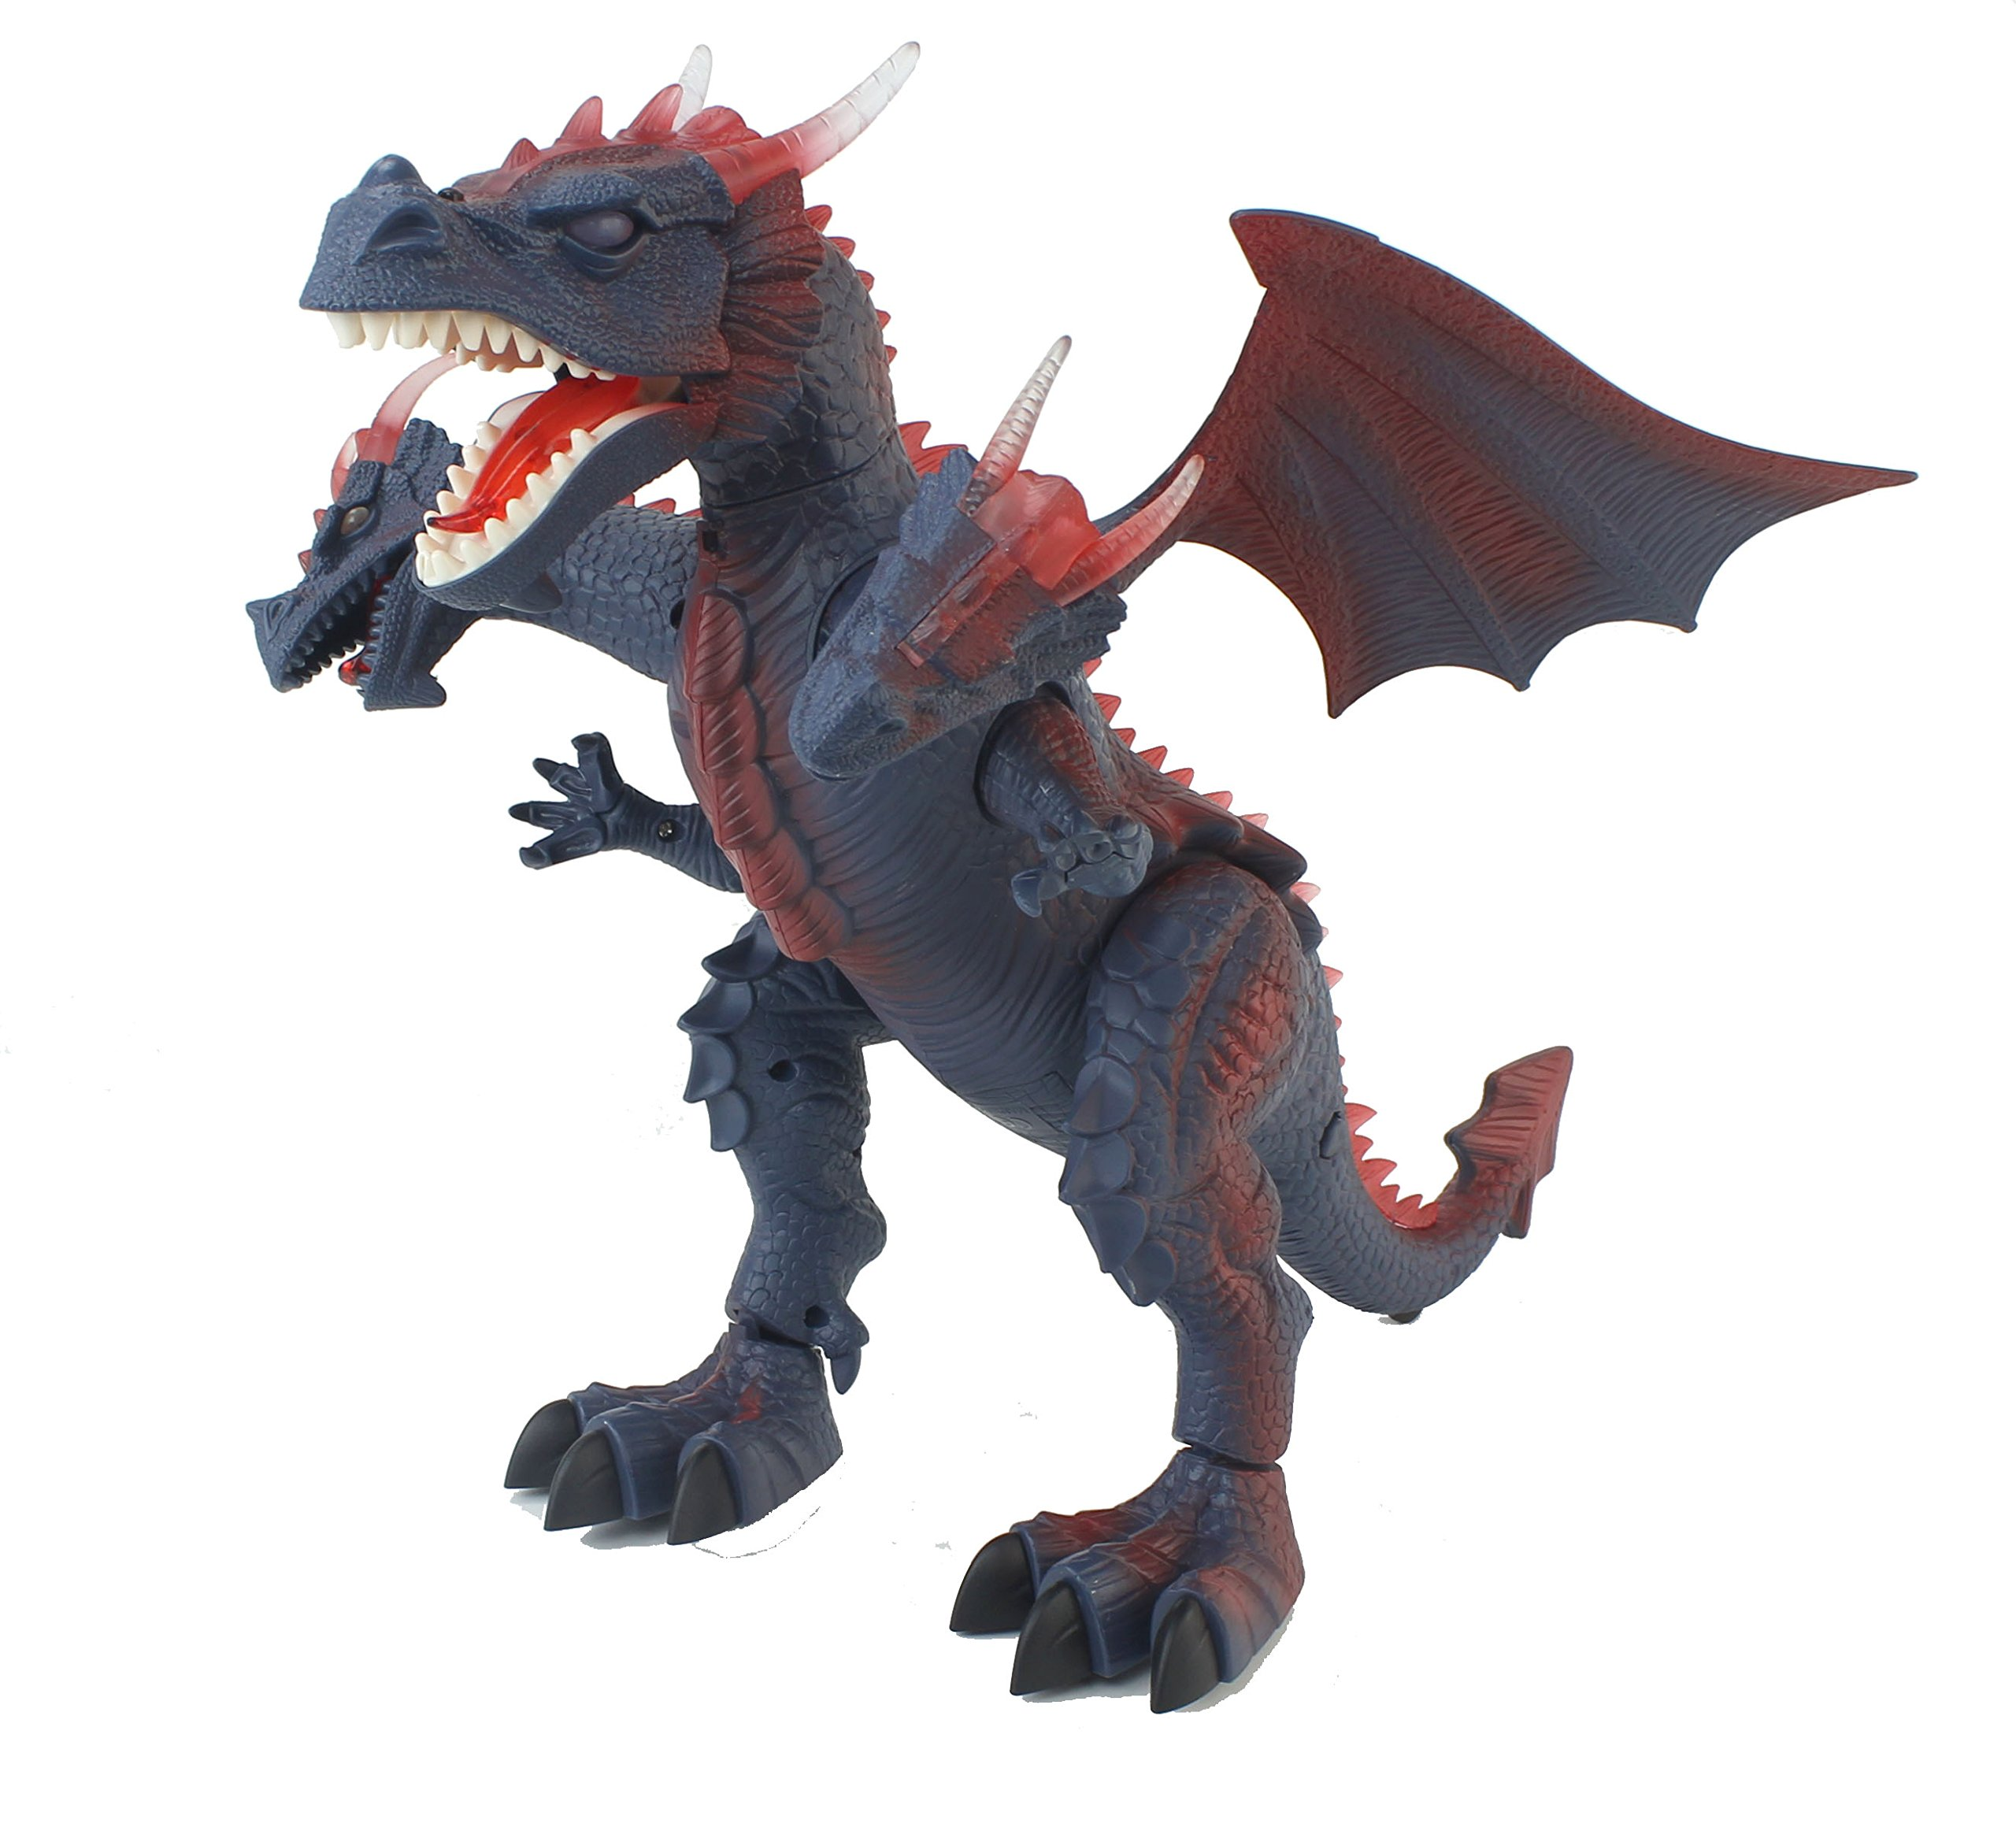 The New World of Dinosaurs Battery Operated Remote Control Toy RC Three Headed Dragon w/ Lights, Sounds, Walking/Wing/Mouth Action, & Flashlight Remote Contro by Velocity Toys (Image #4)